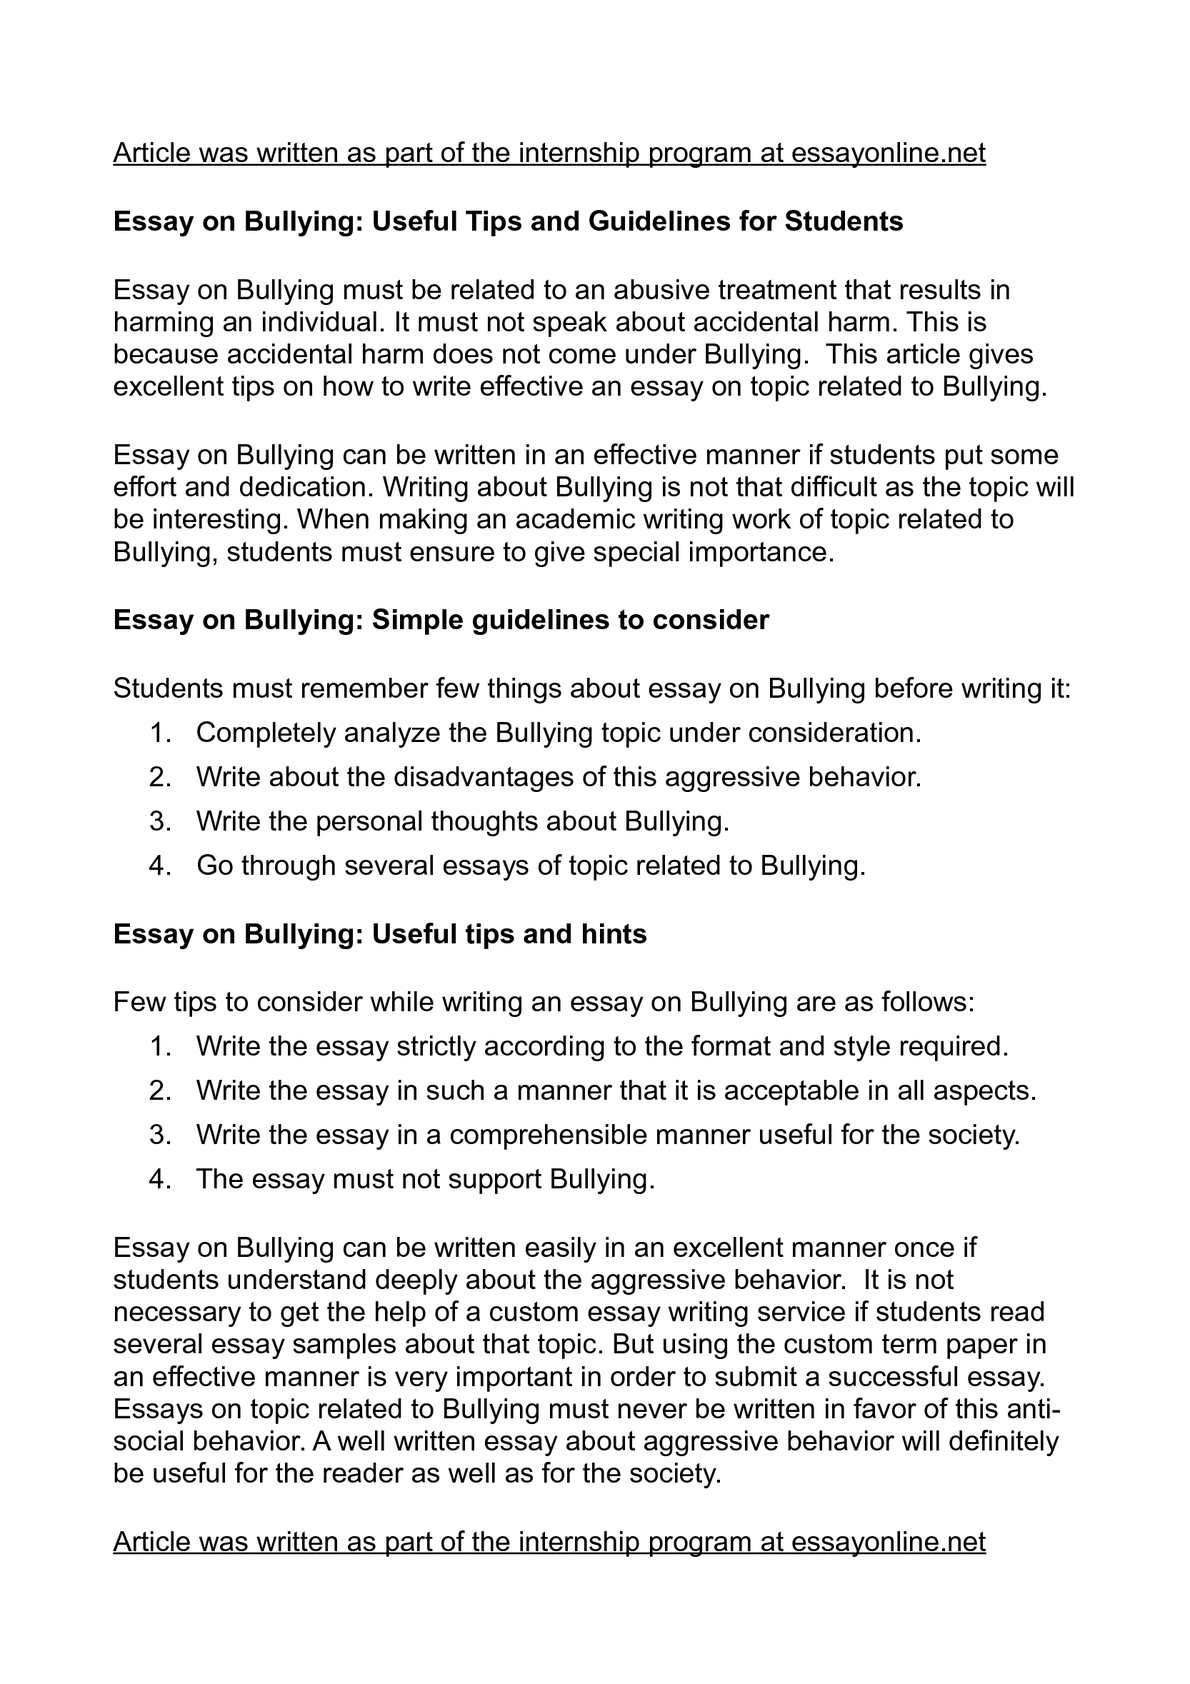 008 Essay About Bullying P1 Best Introduction In School Argumentative Brainly Full